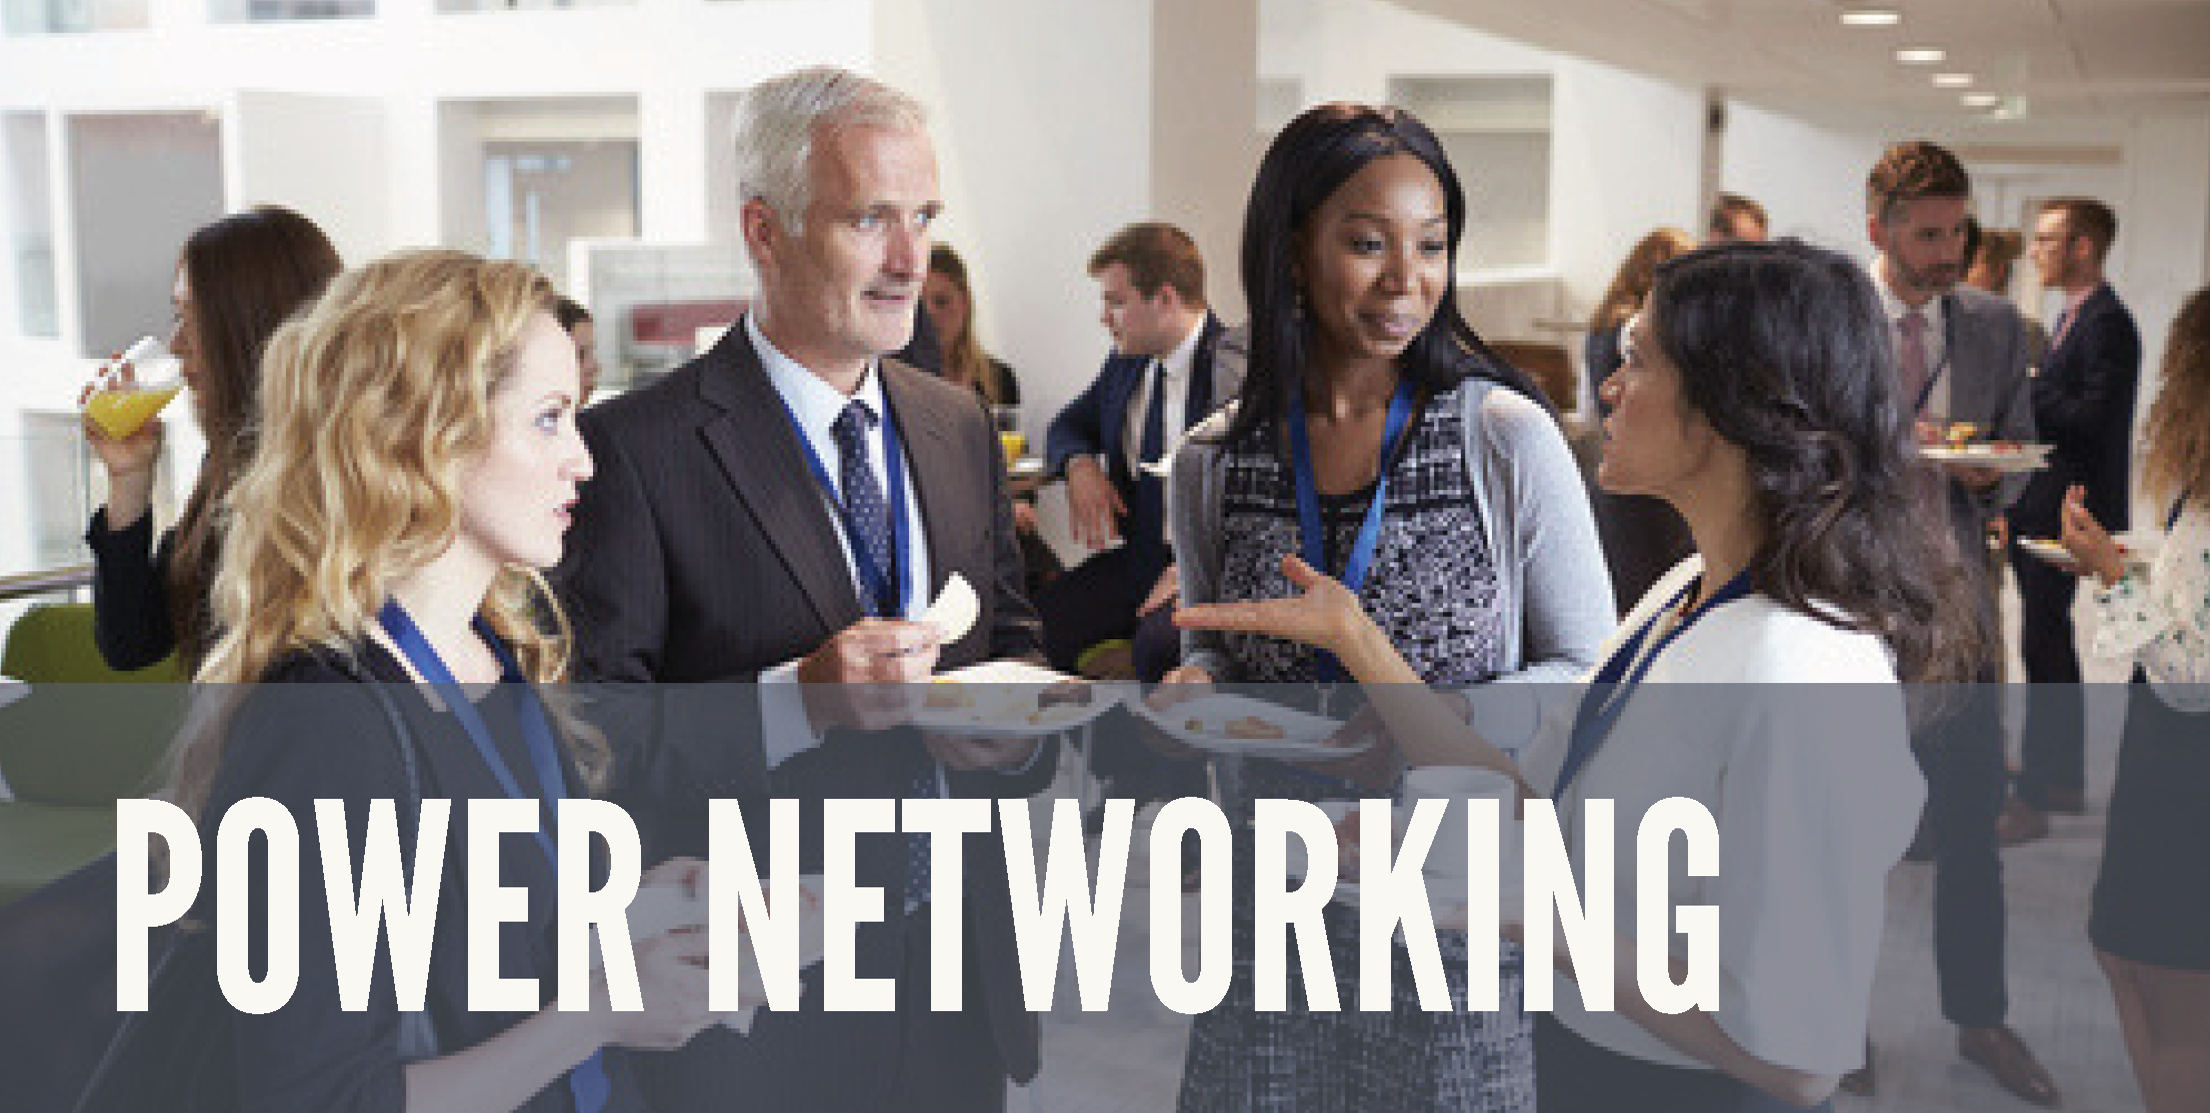 Power Networking - Networking is a critical skill for career success, but finding the time and confidence to make it happen is not always easy. In this workshop participants will join The Coles Group in a relaxed and comfortable setting designed to help participants become skilled networkers.Course Duration: 1.5 Days